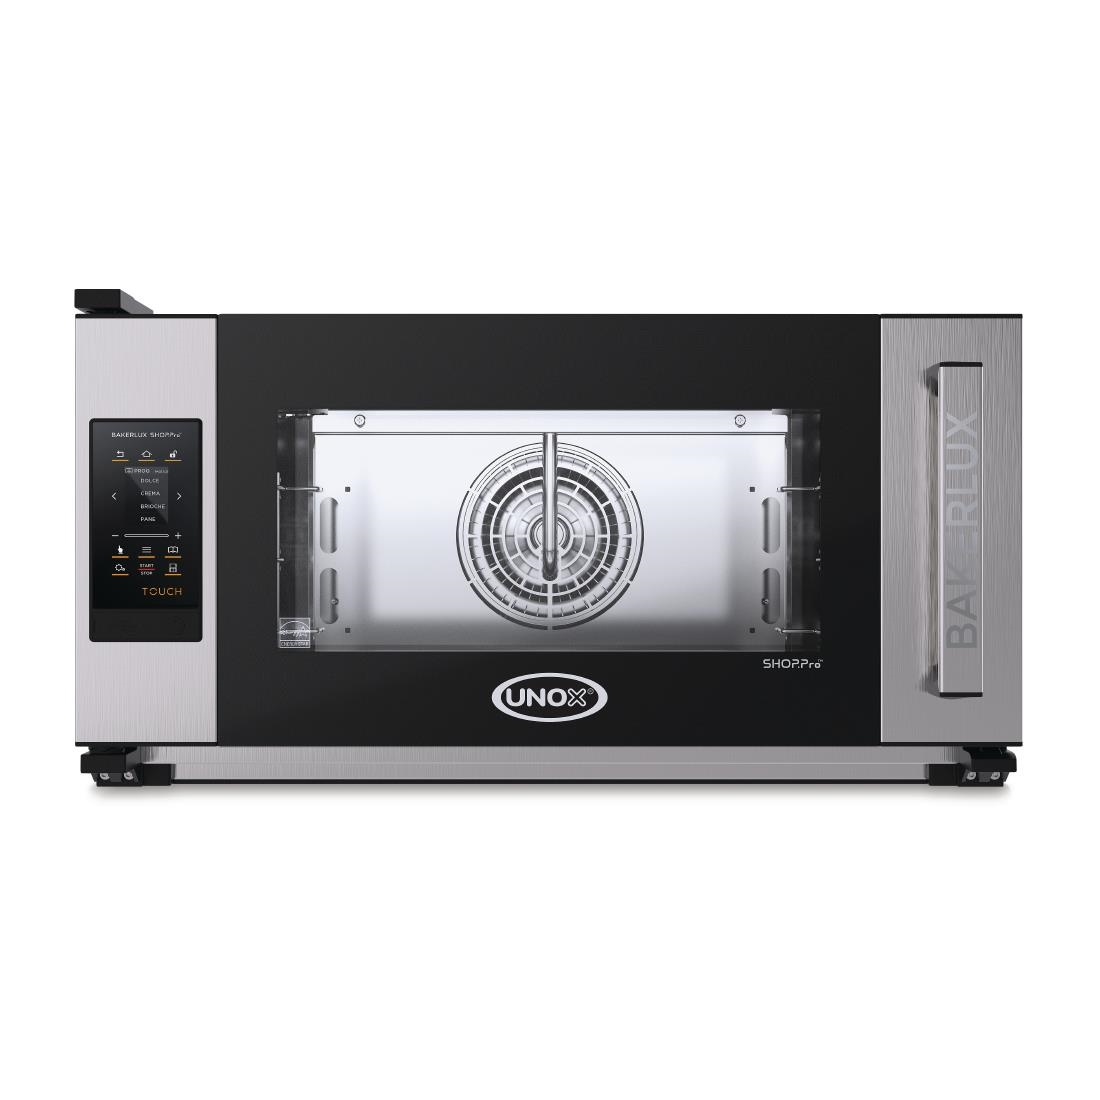 Unox Bakerlux SHOP Pro Elena Matic Touch 3 Grid Convection Oven